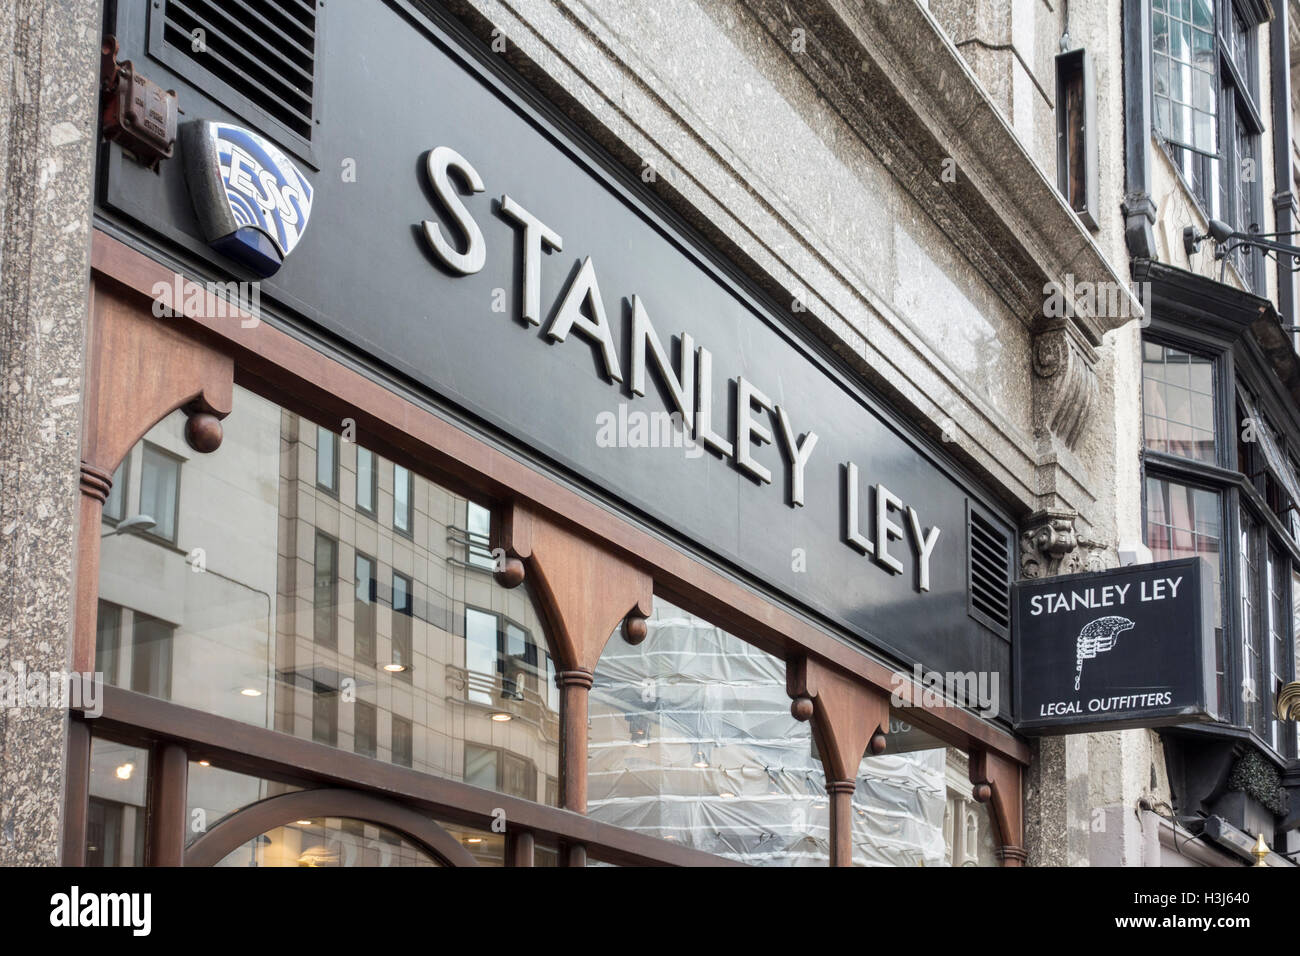 Stanley Ley, Legal Outfitters, City of London, UK - Stock Image